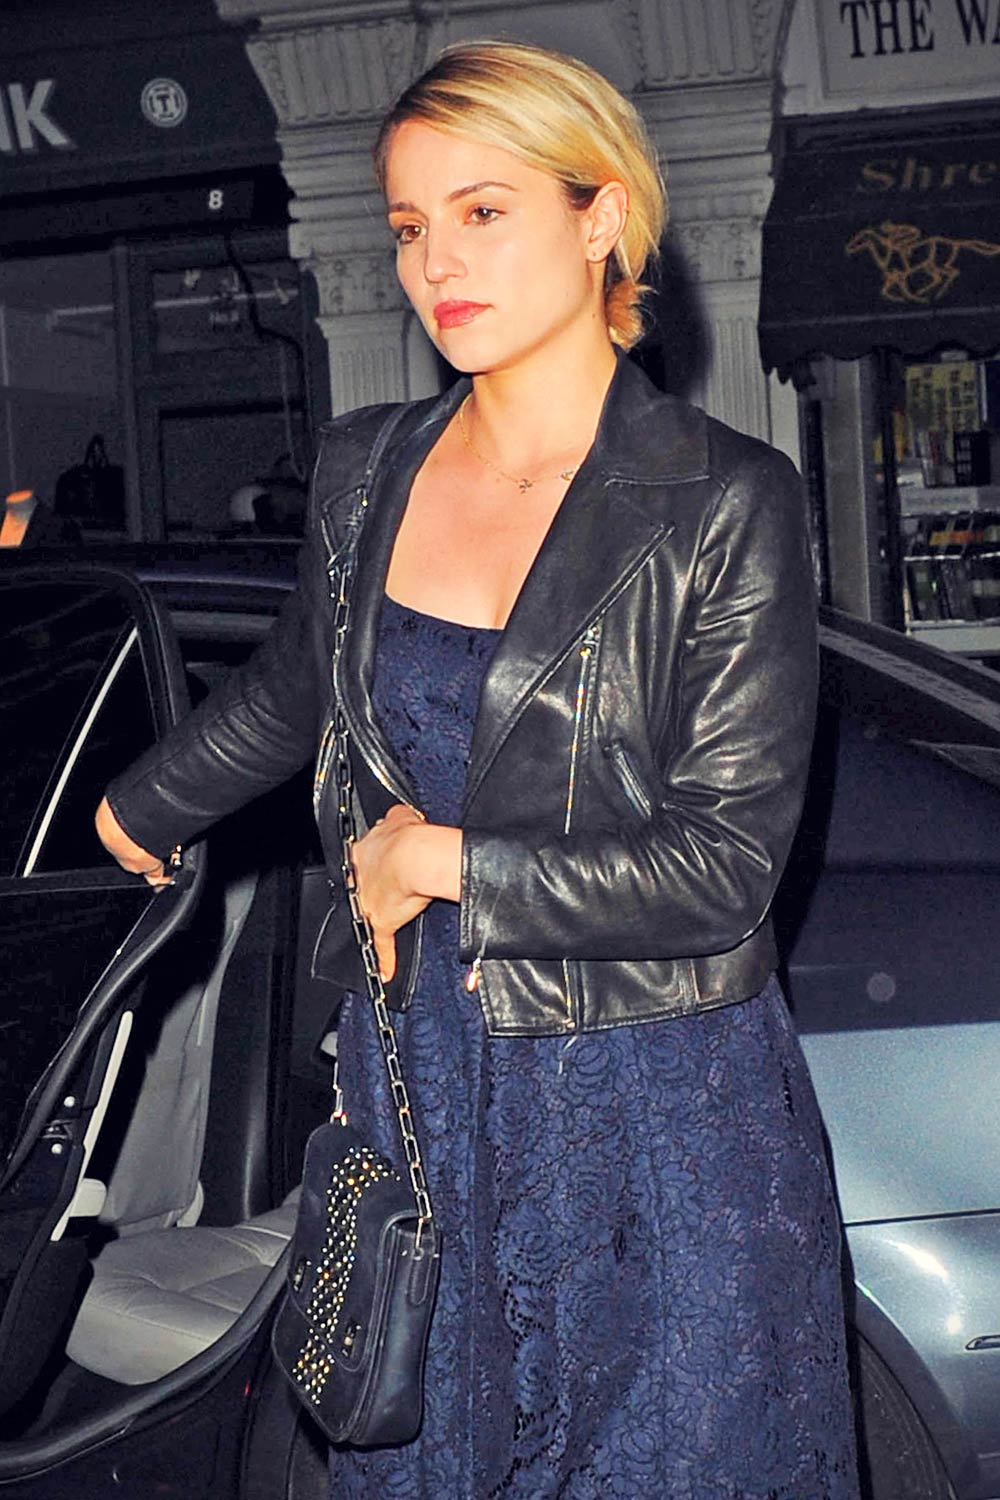 Dianna Agron at the Chiltern Firehouse